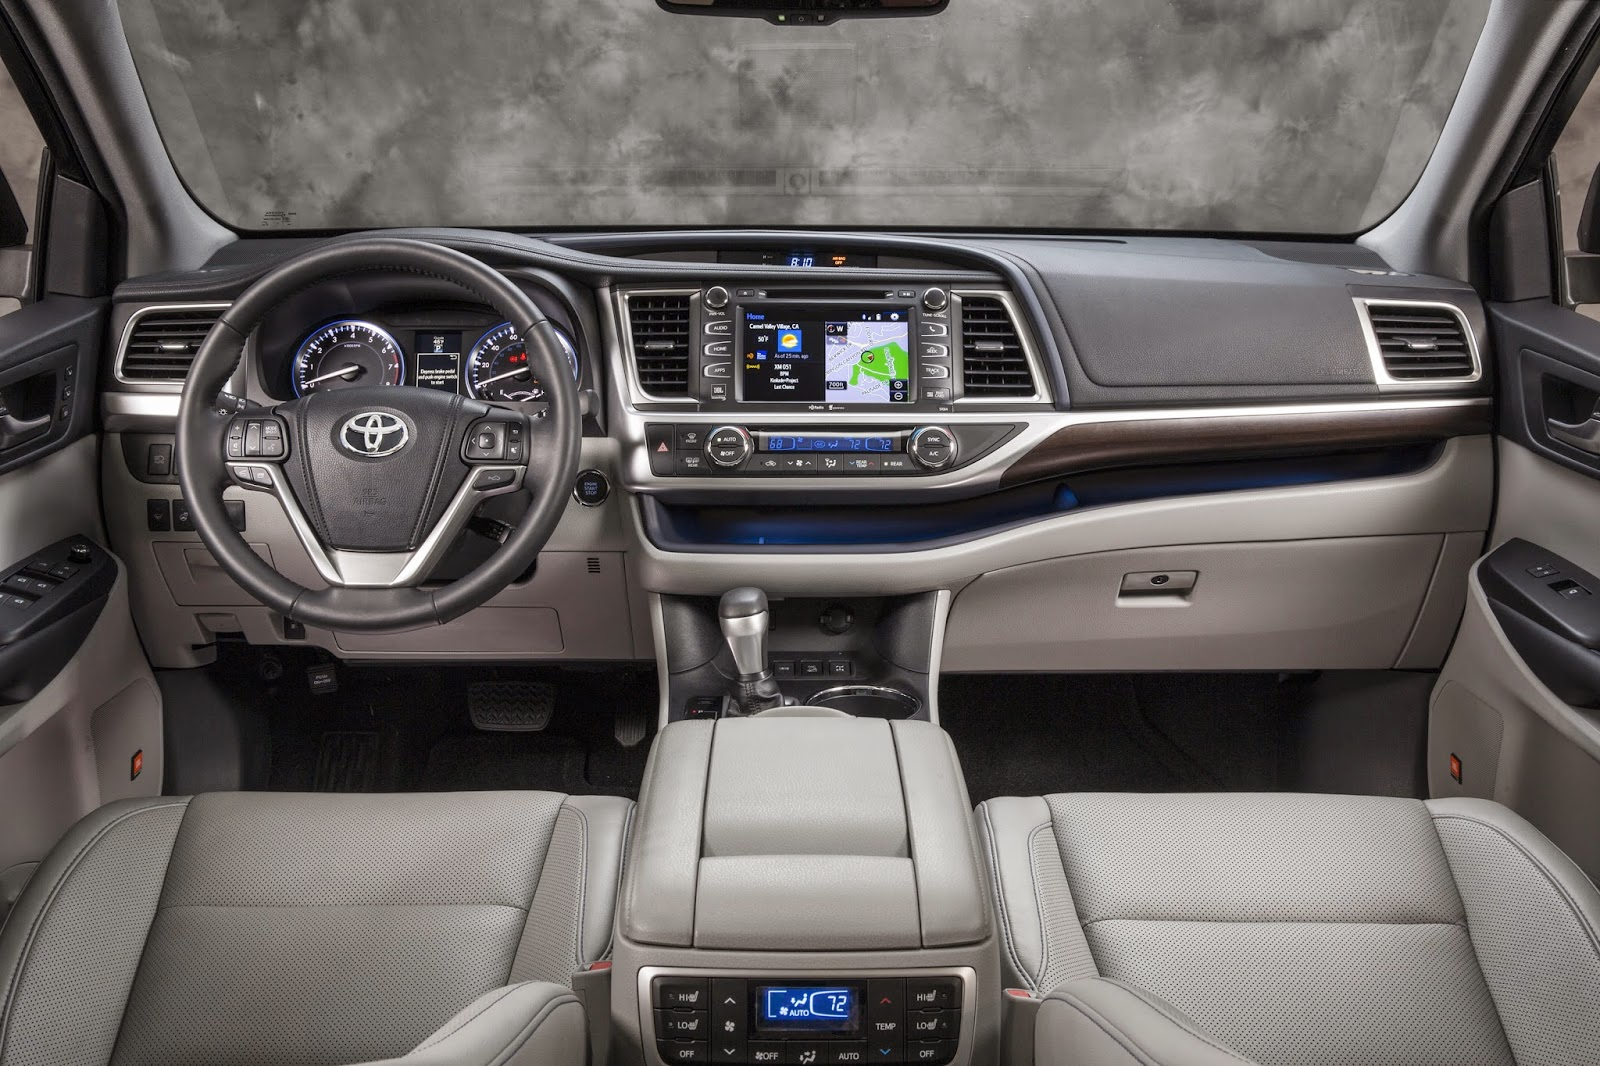 2014 Toyota Highlander Hybrid interior view